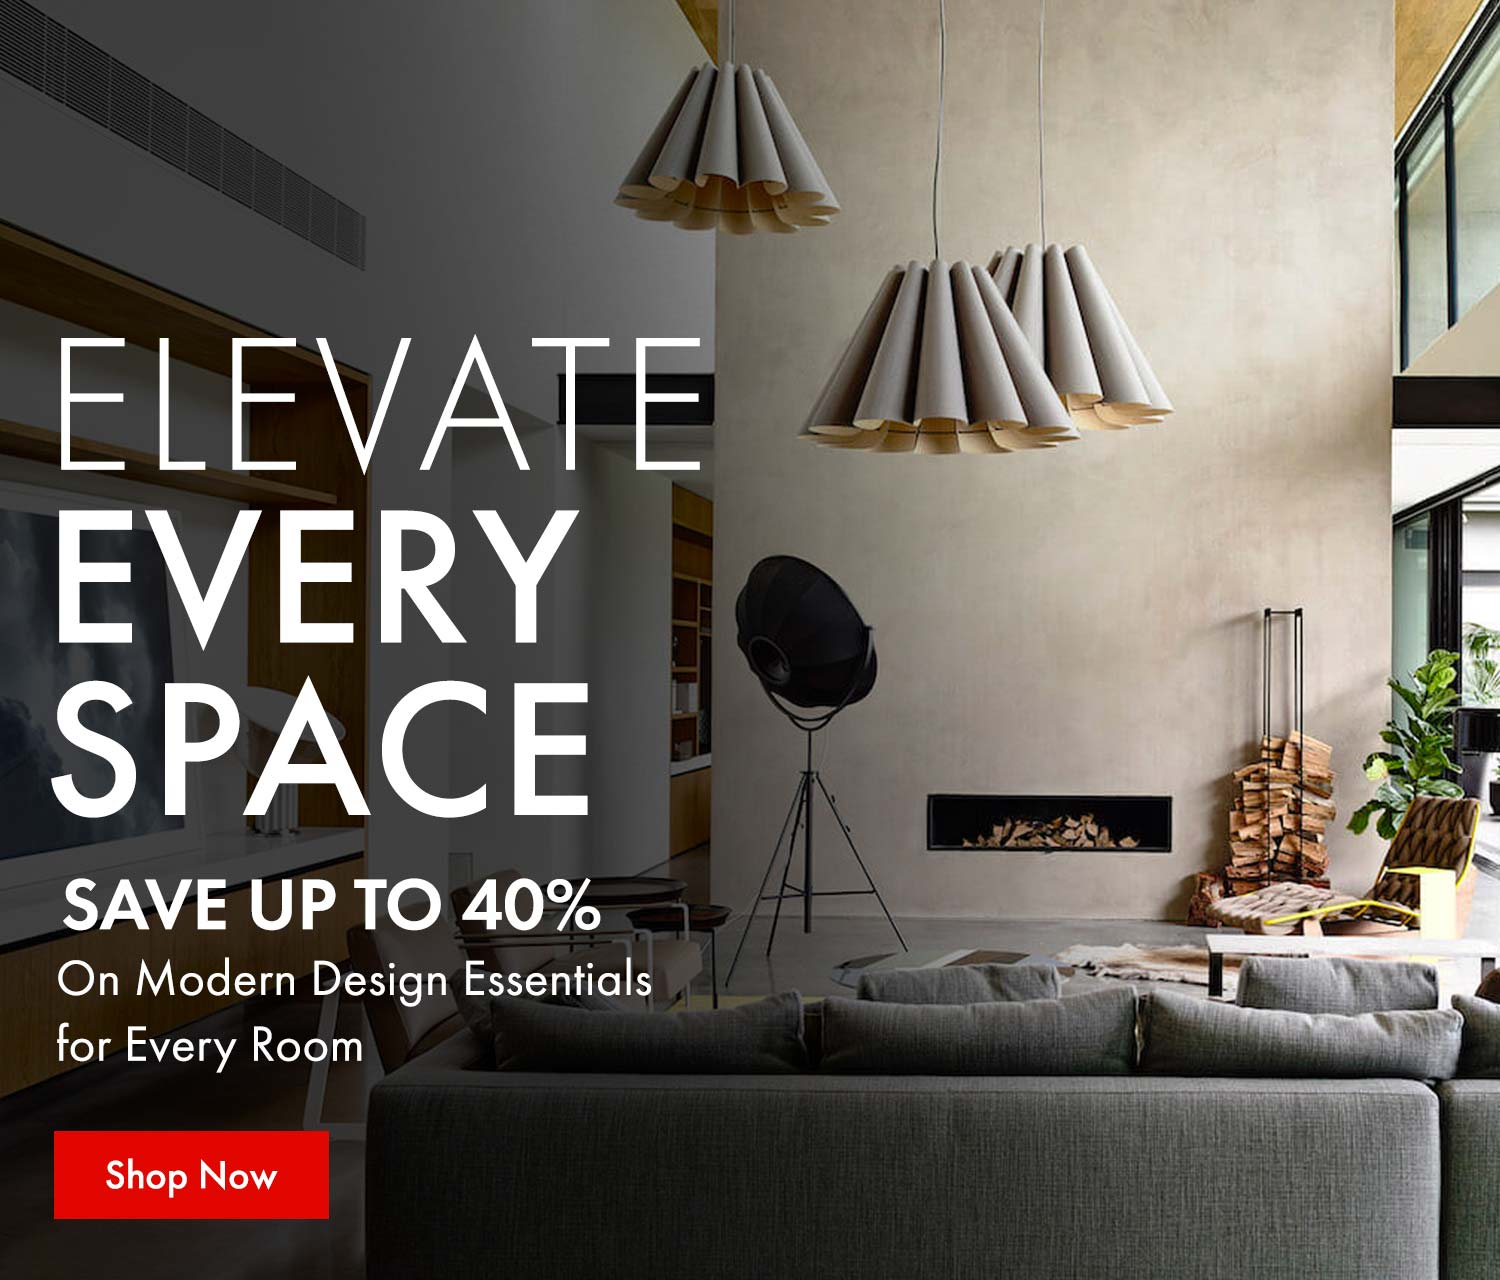 Elevate Every Space